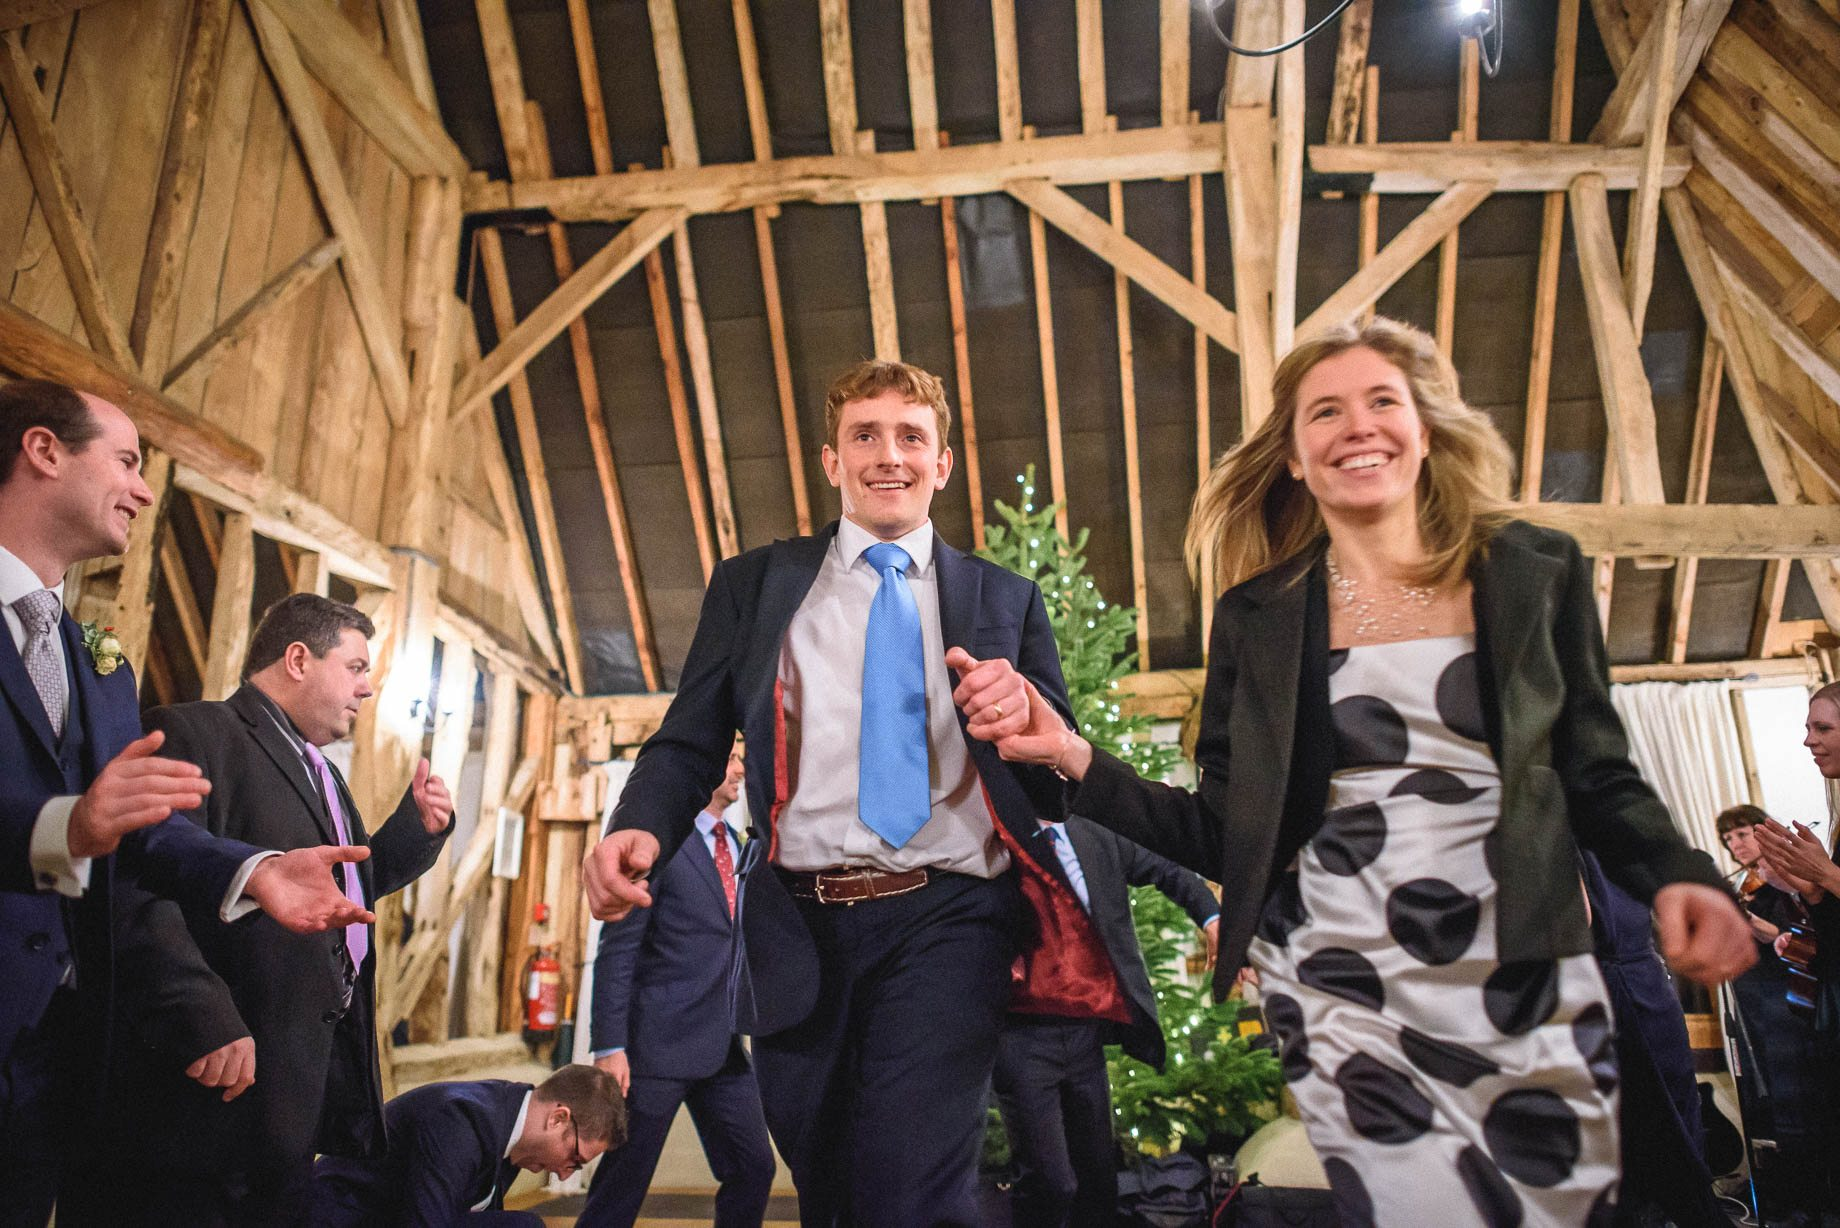 Clock Barn Wedding Photography - Eva and Ollie (170 of 170)